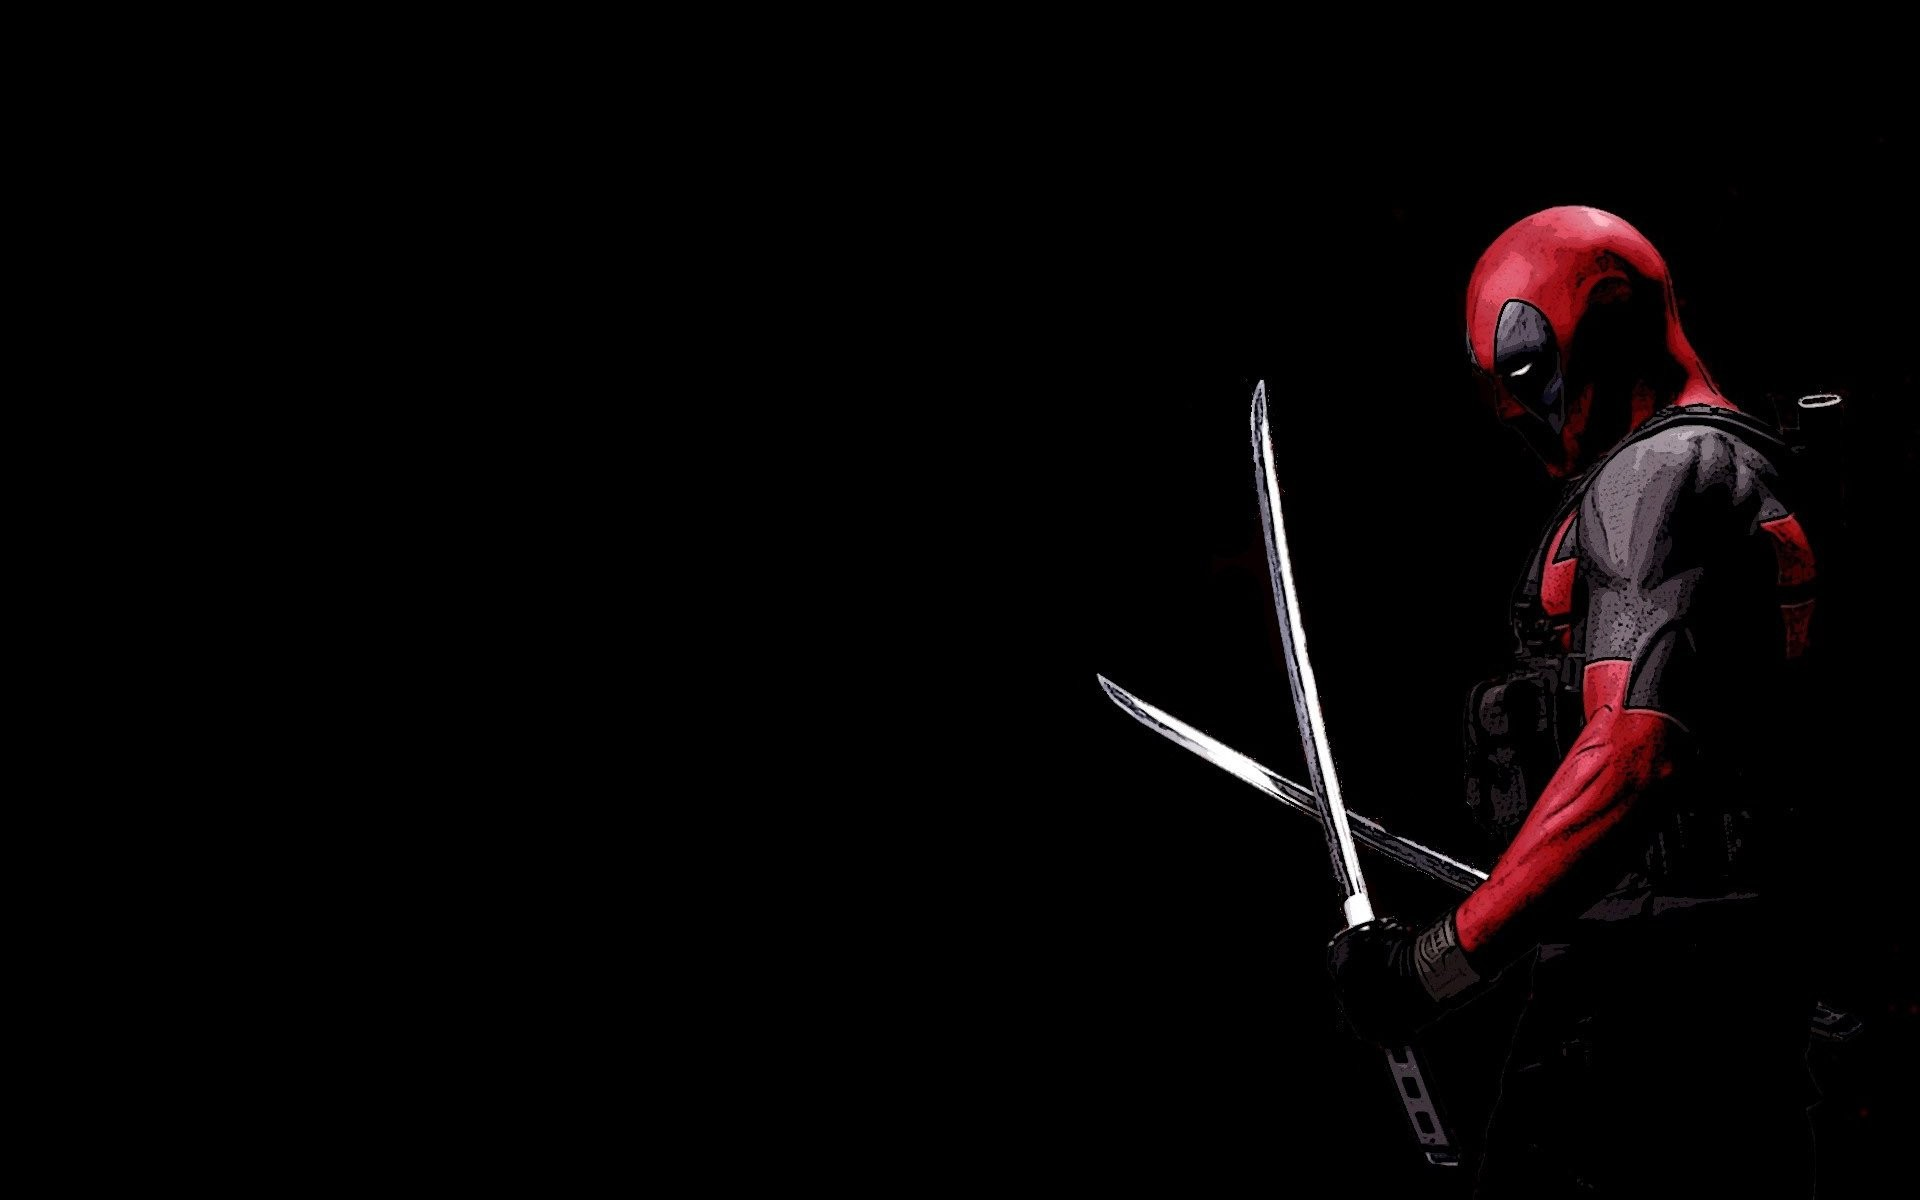 1920x1200 Comics - Deadpool Merc with a Mouth Wallpaper